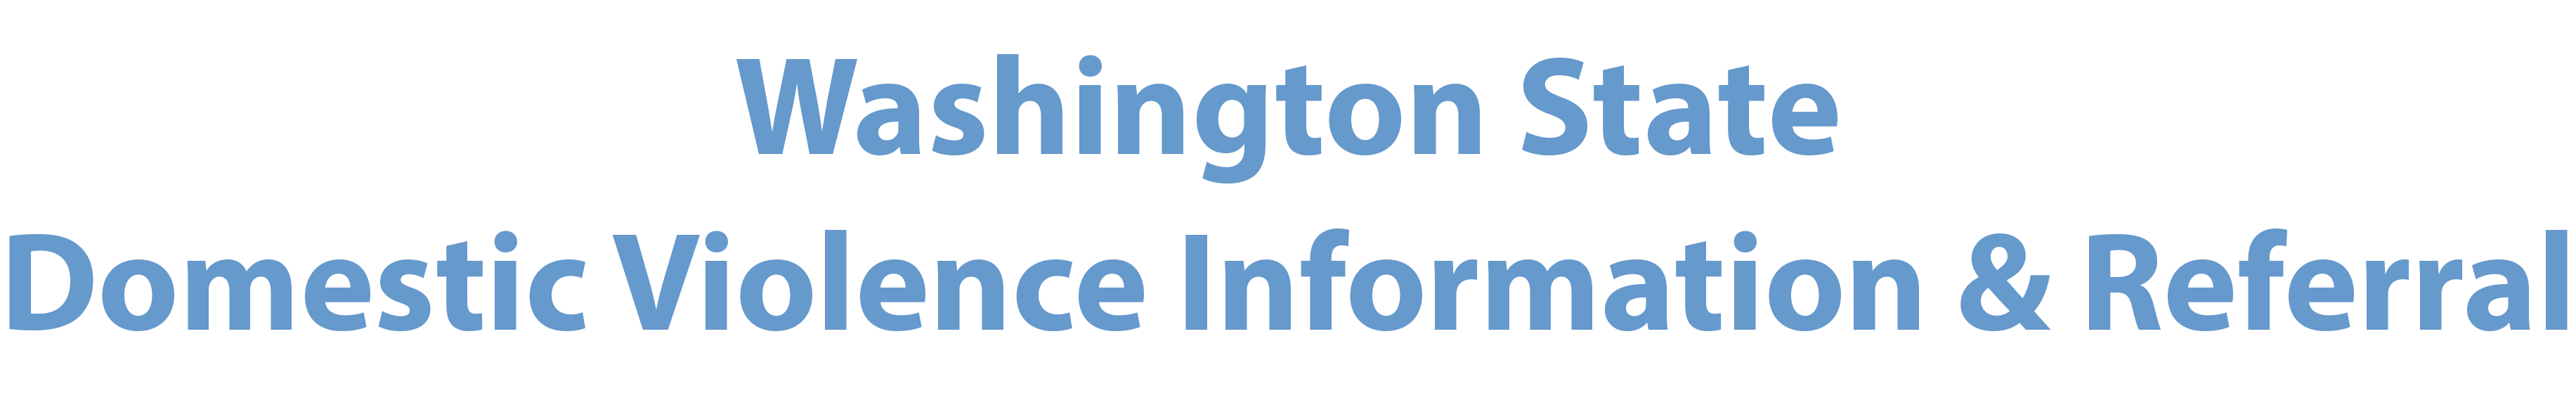 Washington Information and Referral